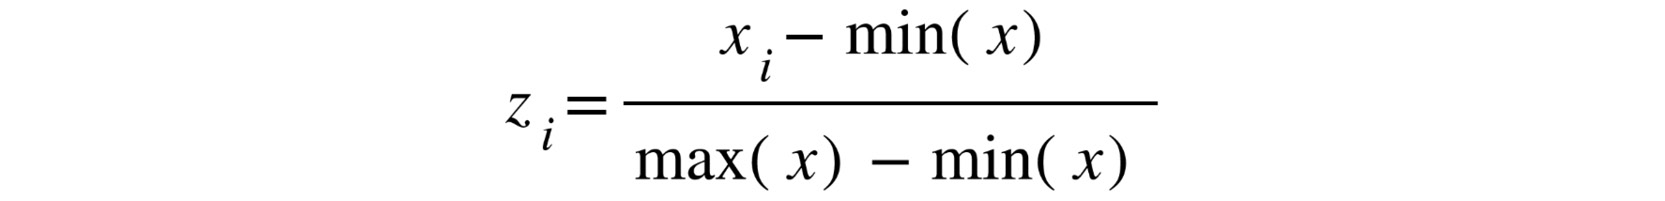 Figure 1.14: The normalization equation